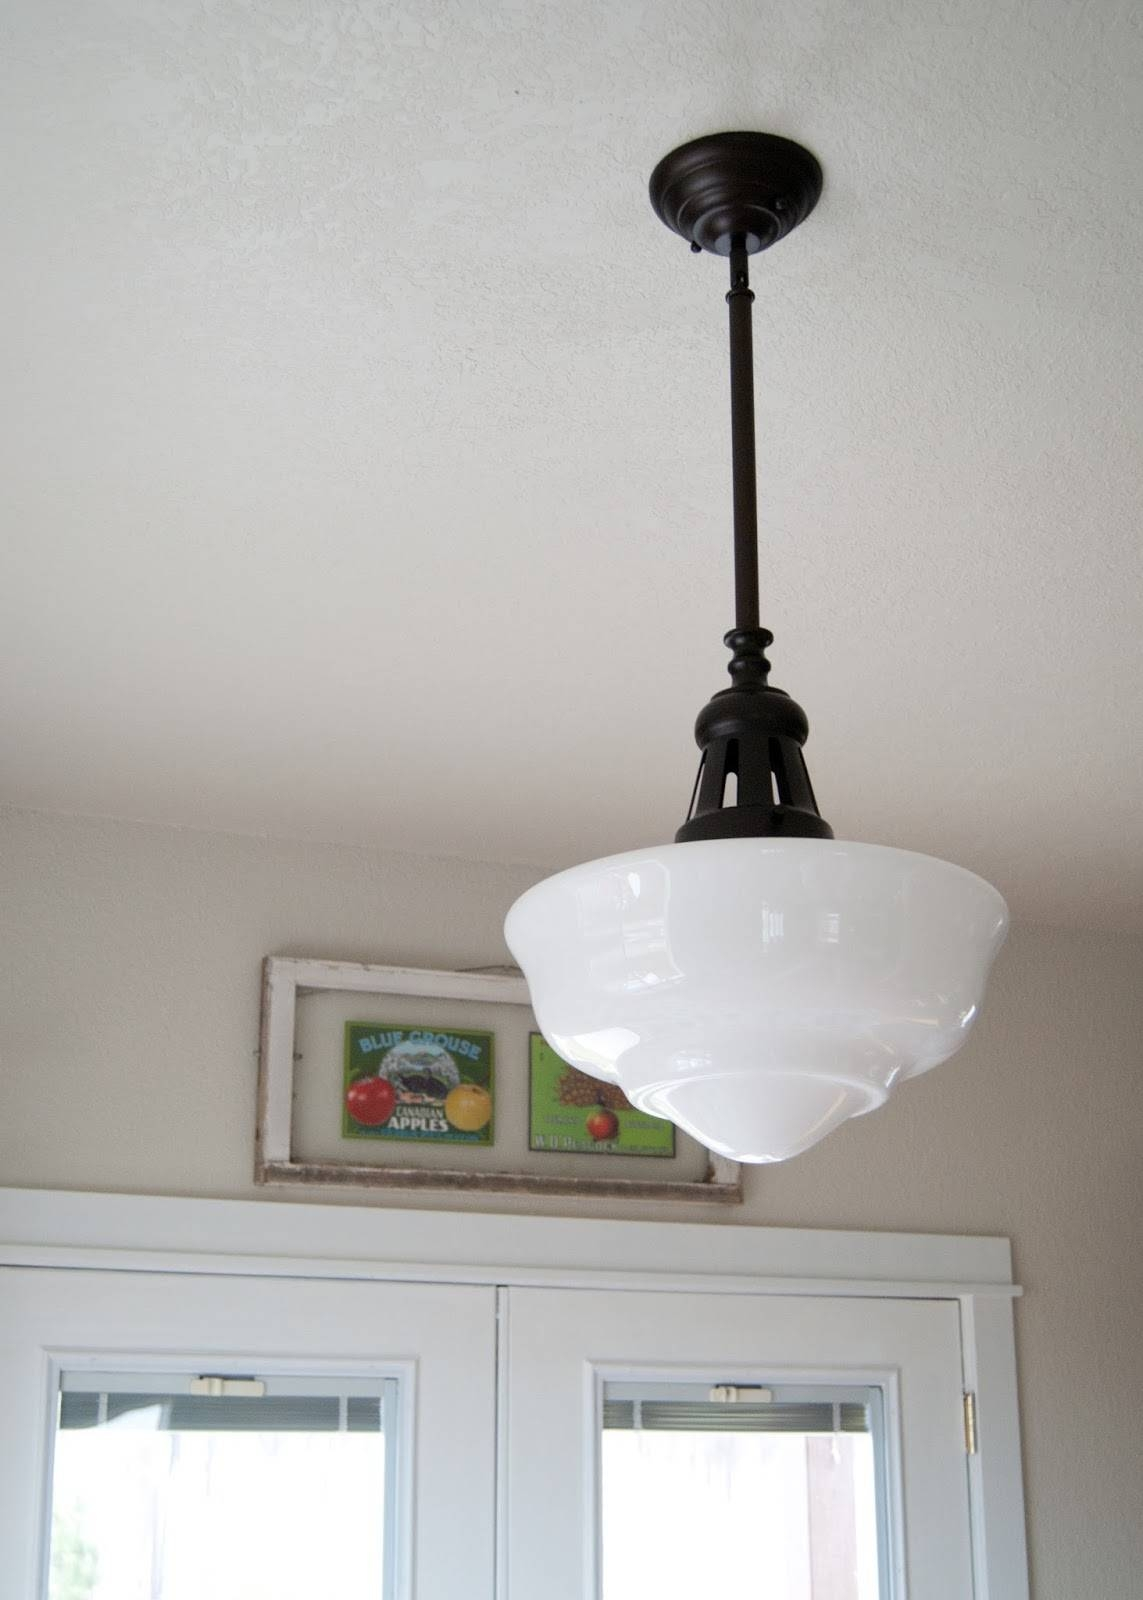 Lighting: Schoolhouse Pendant Light Fixtures | Schoolhouse with Schoolhouse Pendant Lights Fixtures (Image 5 of 15)